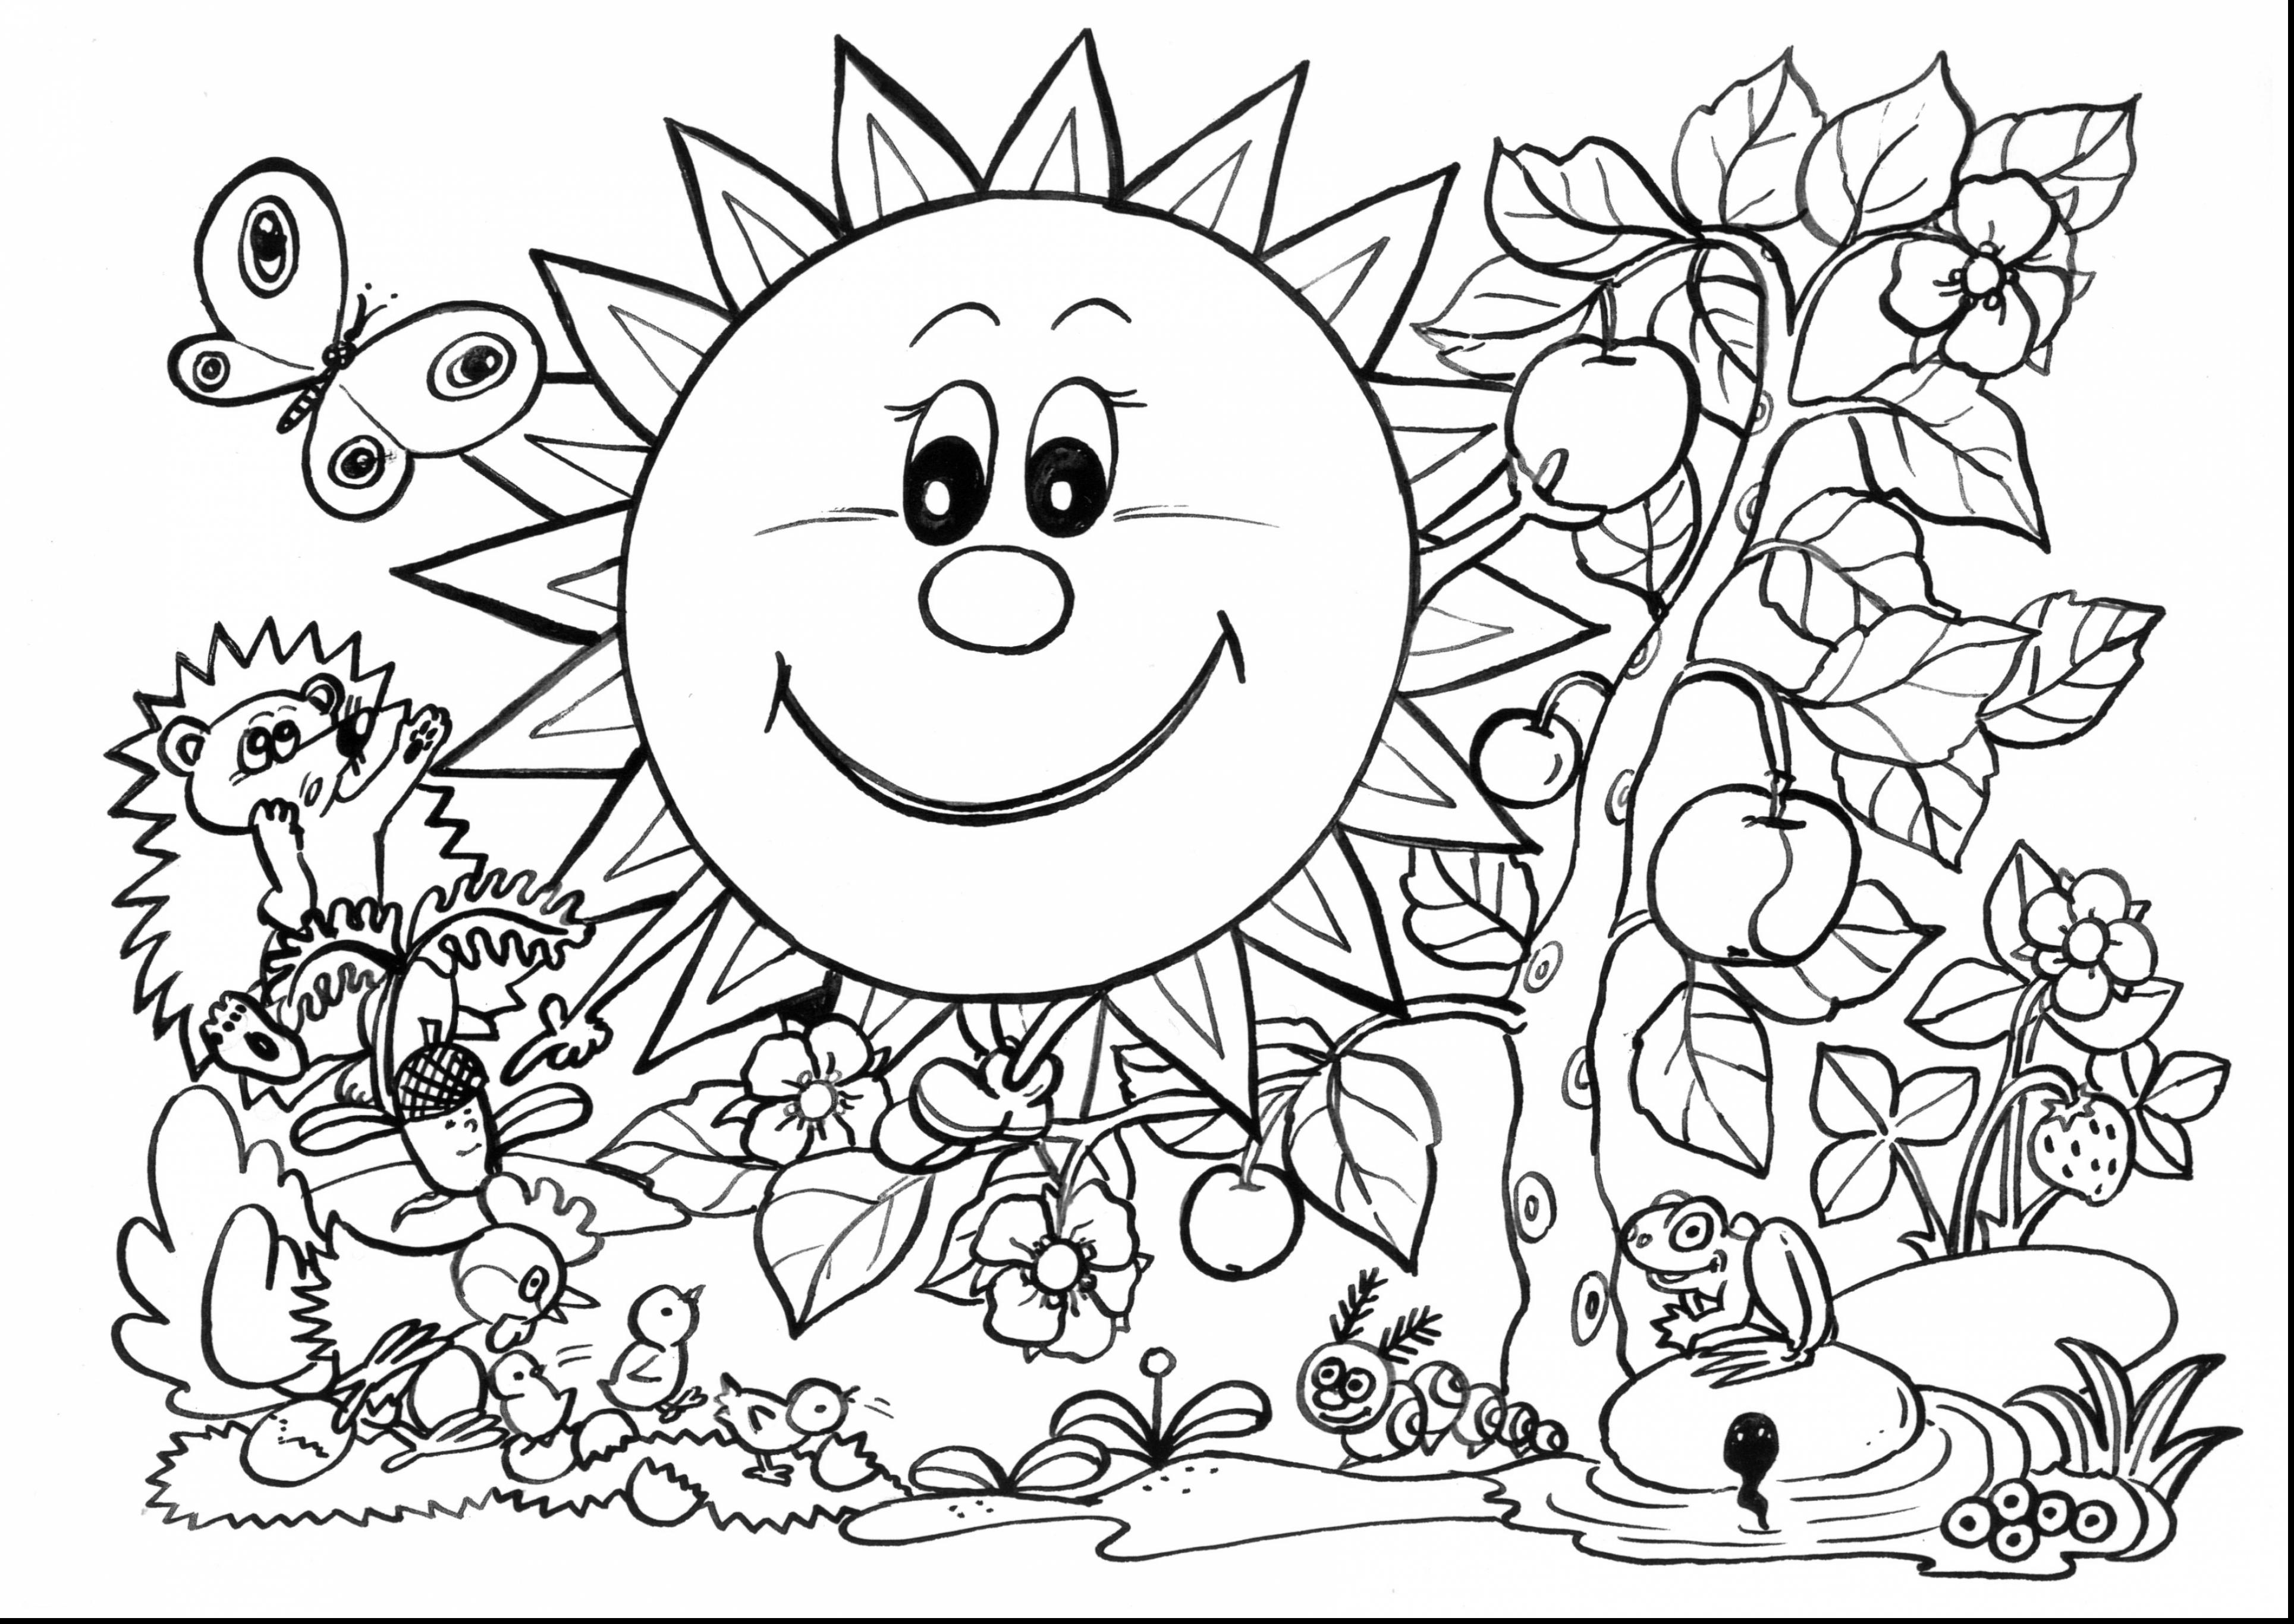 image regarding Free Printable Spring Coloring Pages for Adults named Totally free Spring Coloring Webpages For Young children at